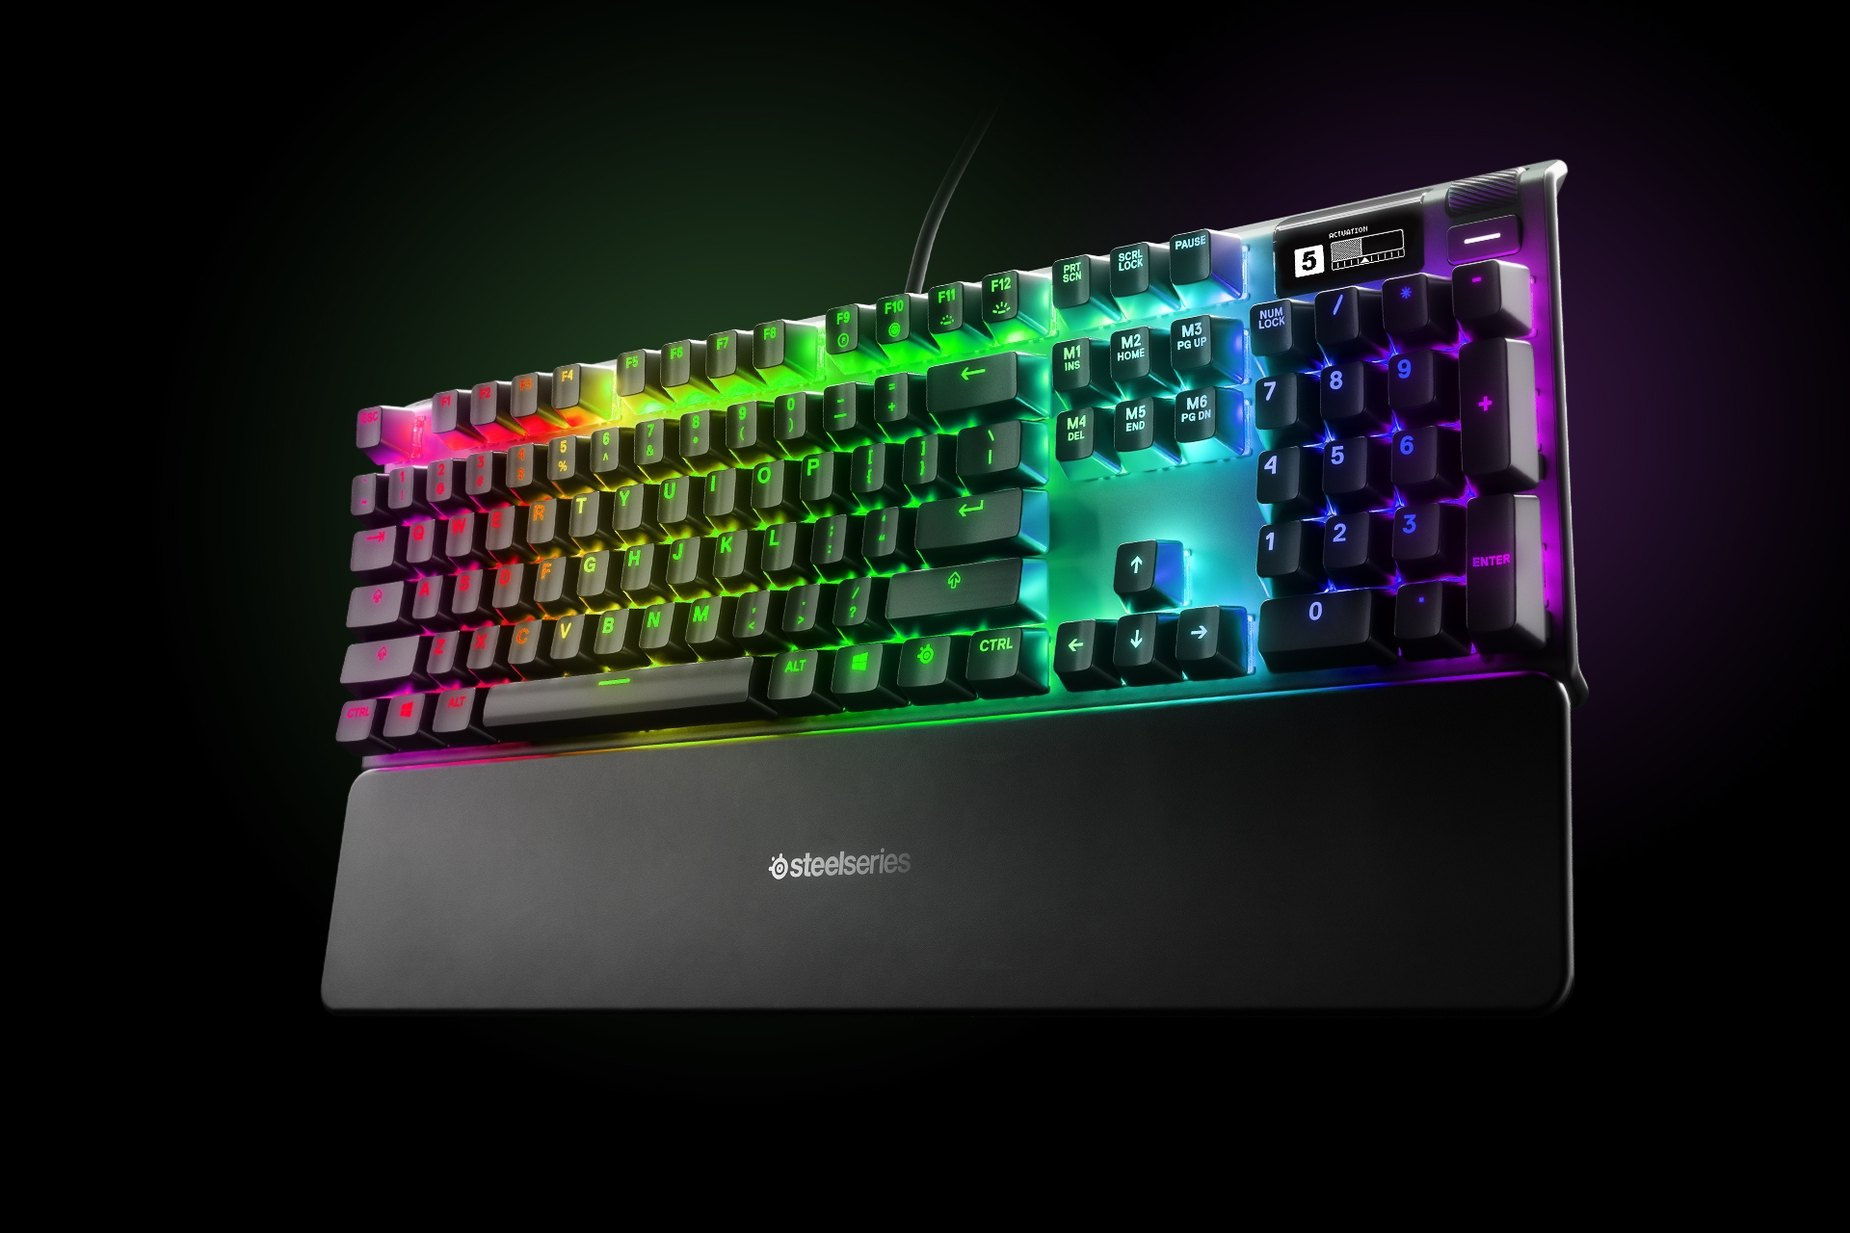 Taiwanese - APEX PRO gaming keyboard with the illumination lit up on dark background, also shows the OLED screen and controls used to change settings, switch actuation, and adjust audio